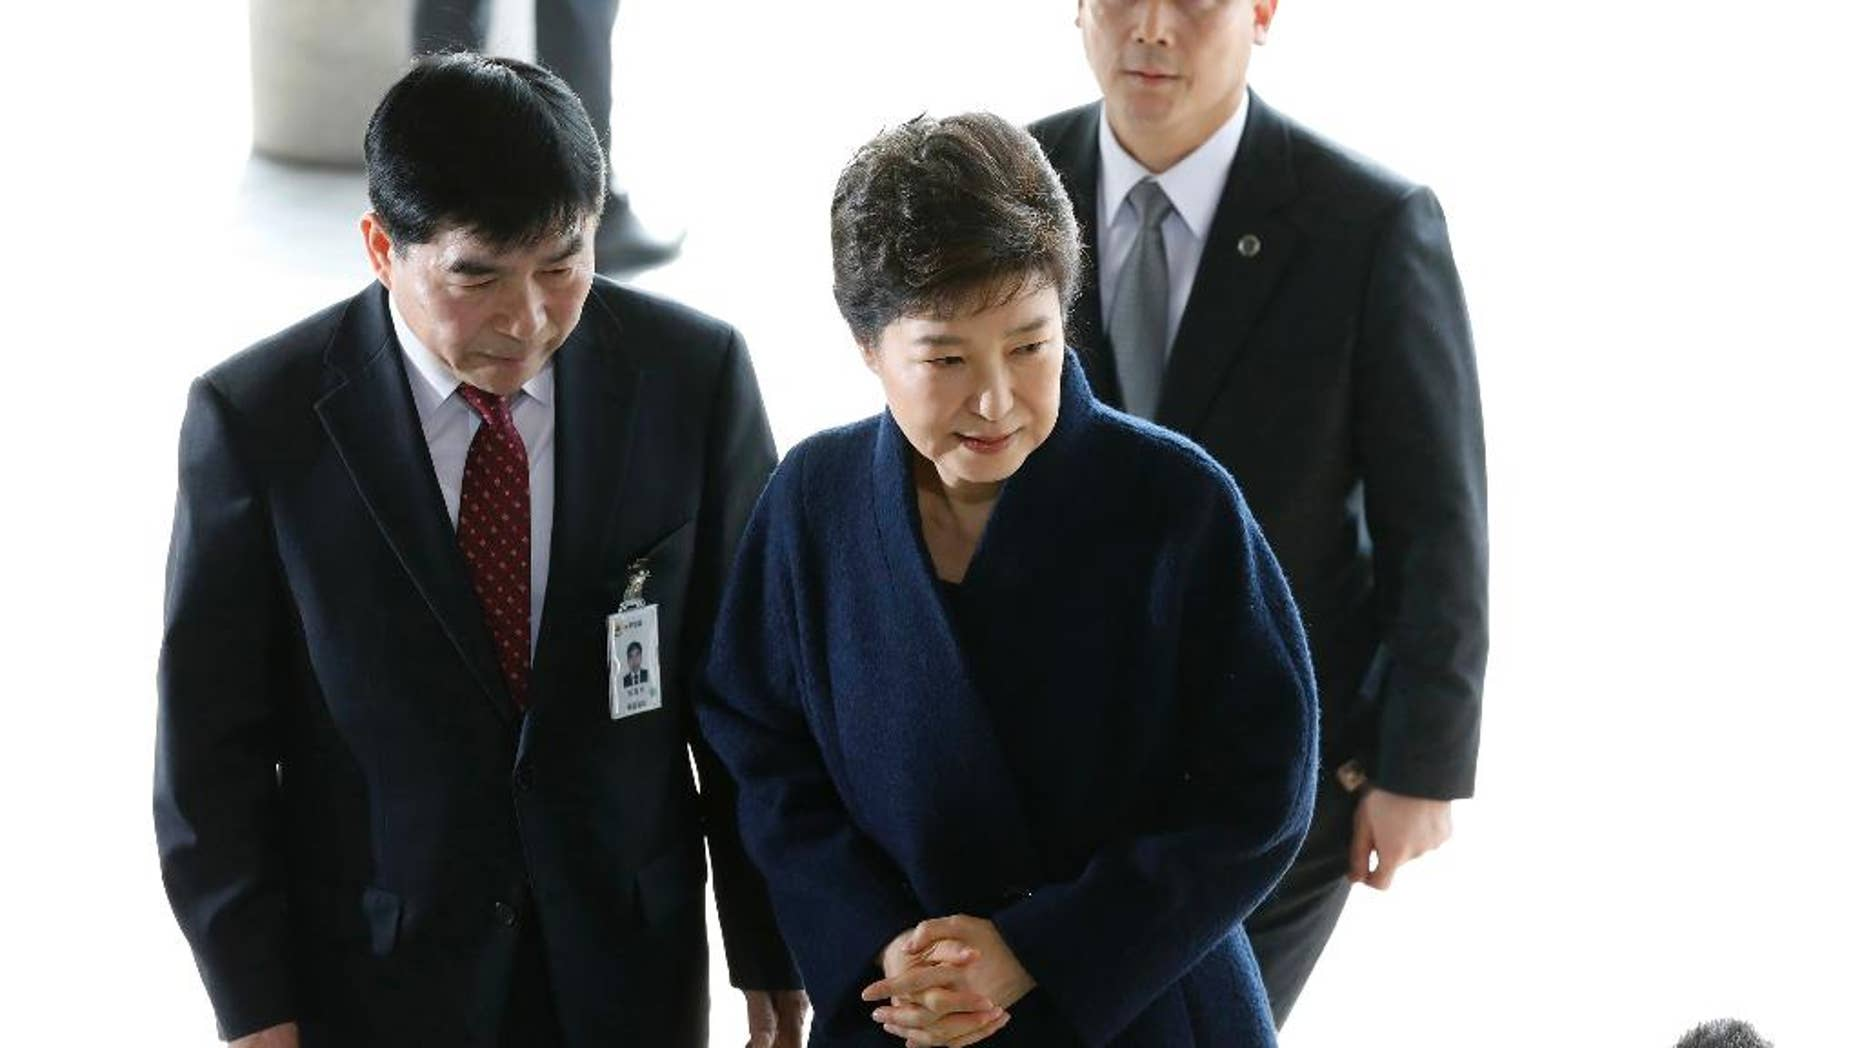 FILE - In this Tuesday, March, 21, 2017 file photo, South Korea's ousted leader Park Geun-hye arrives at a prosecutor's office in Seoul, South Korea. Park has decided to attend a questioning session by a Seoul court before it determines whether she should be arrested over explosive corruption allegations, prosecutors said Tuesday, March 28. (Kim Hong-ji/Pool Photo via AP, File)